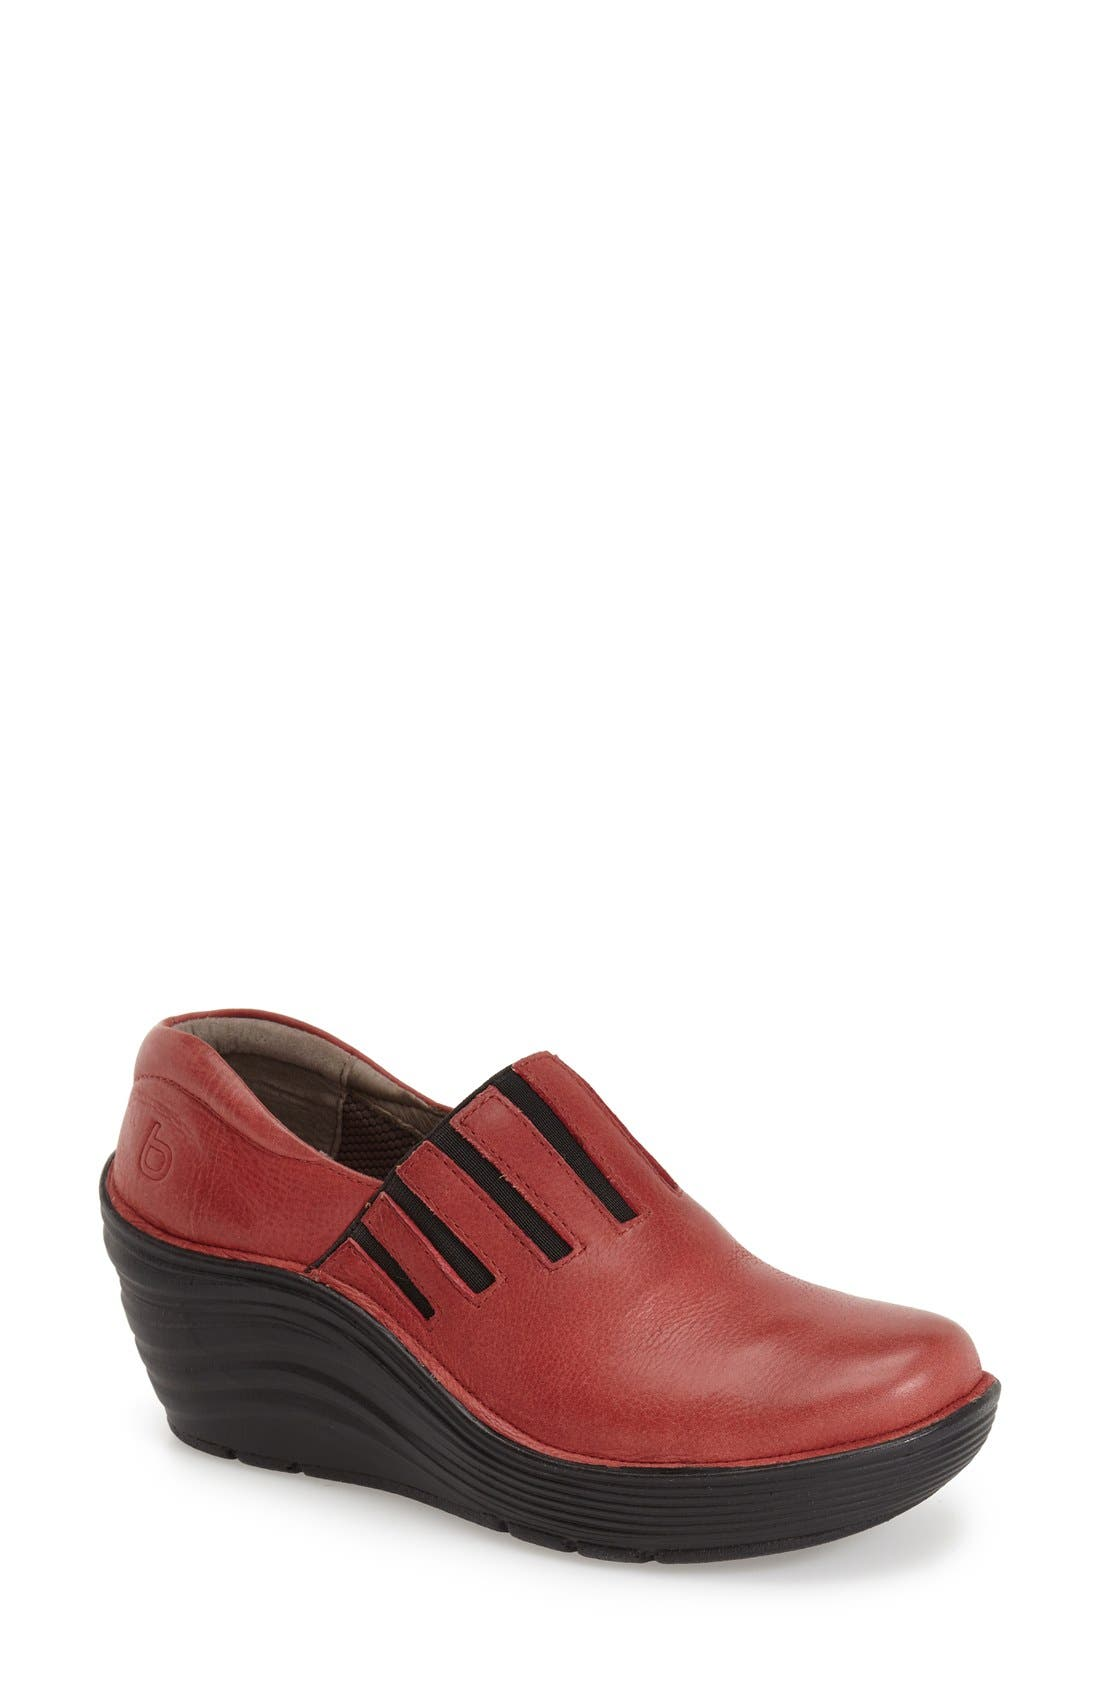 bionica 'Coast' Clog (Women)